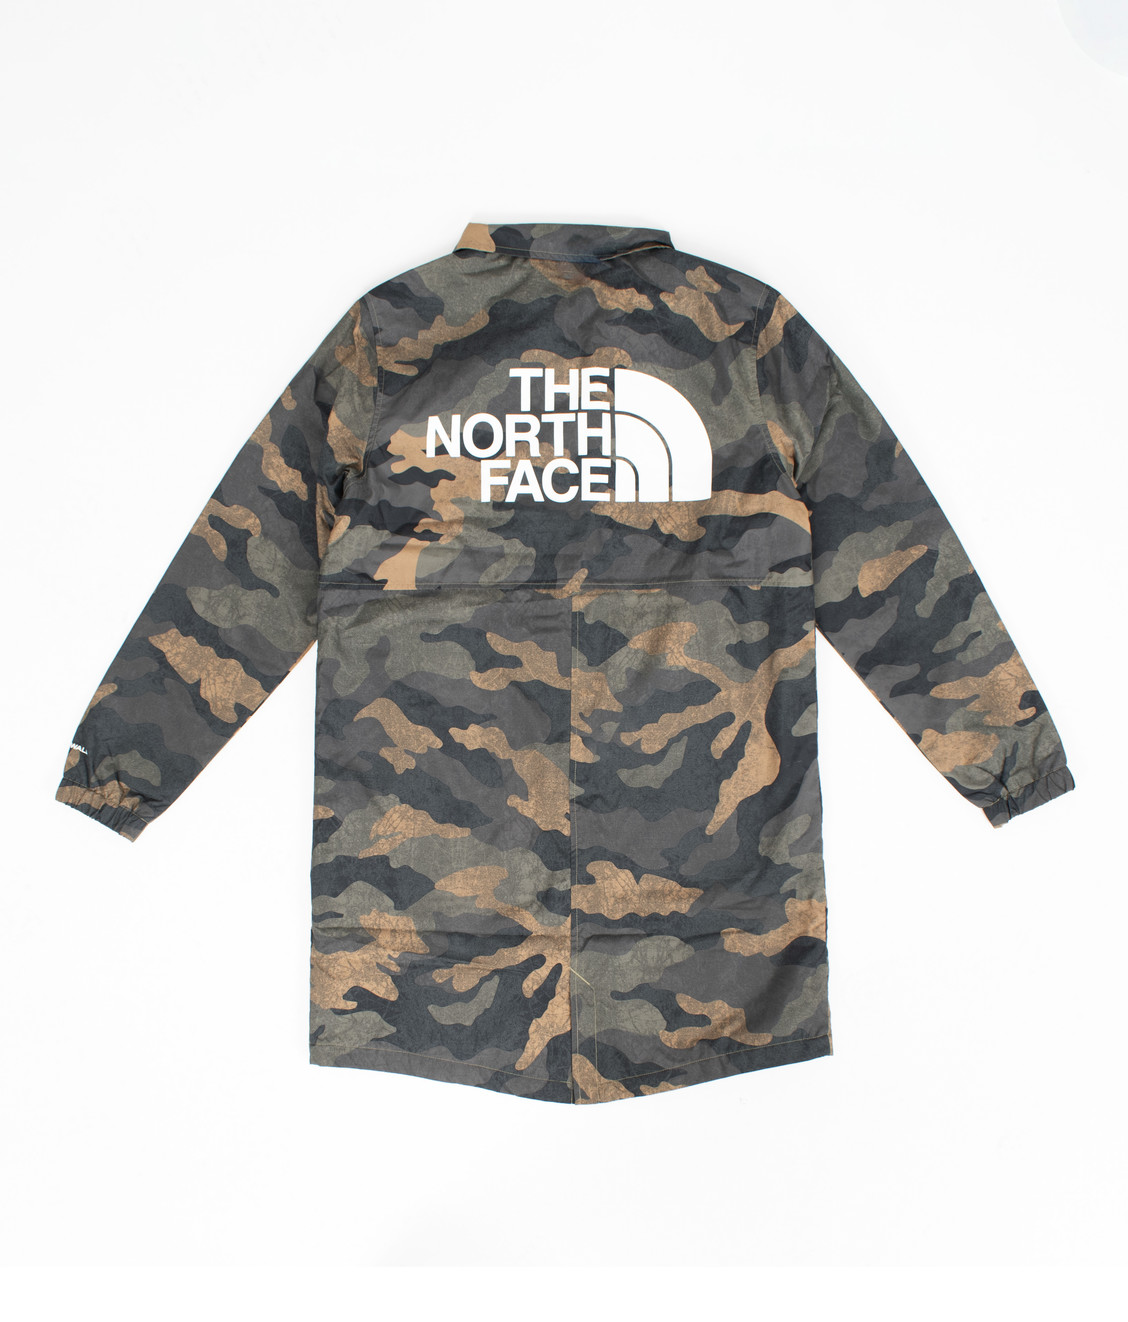 The North Face Copy of The North Face Coach Jacket Khaki